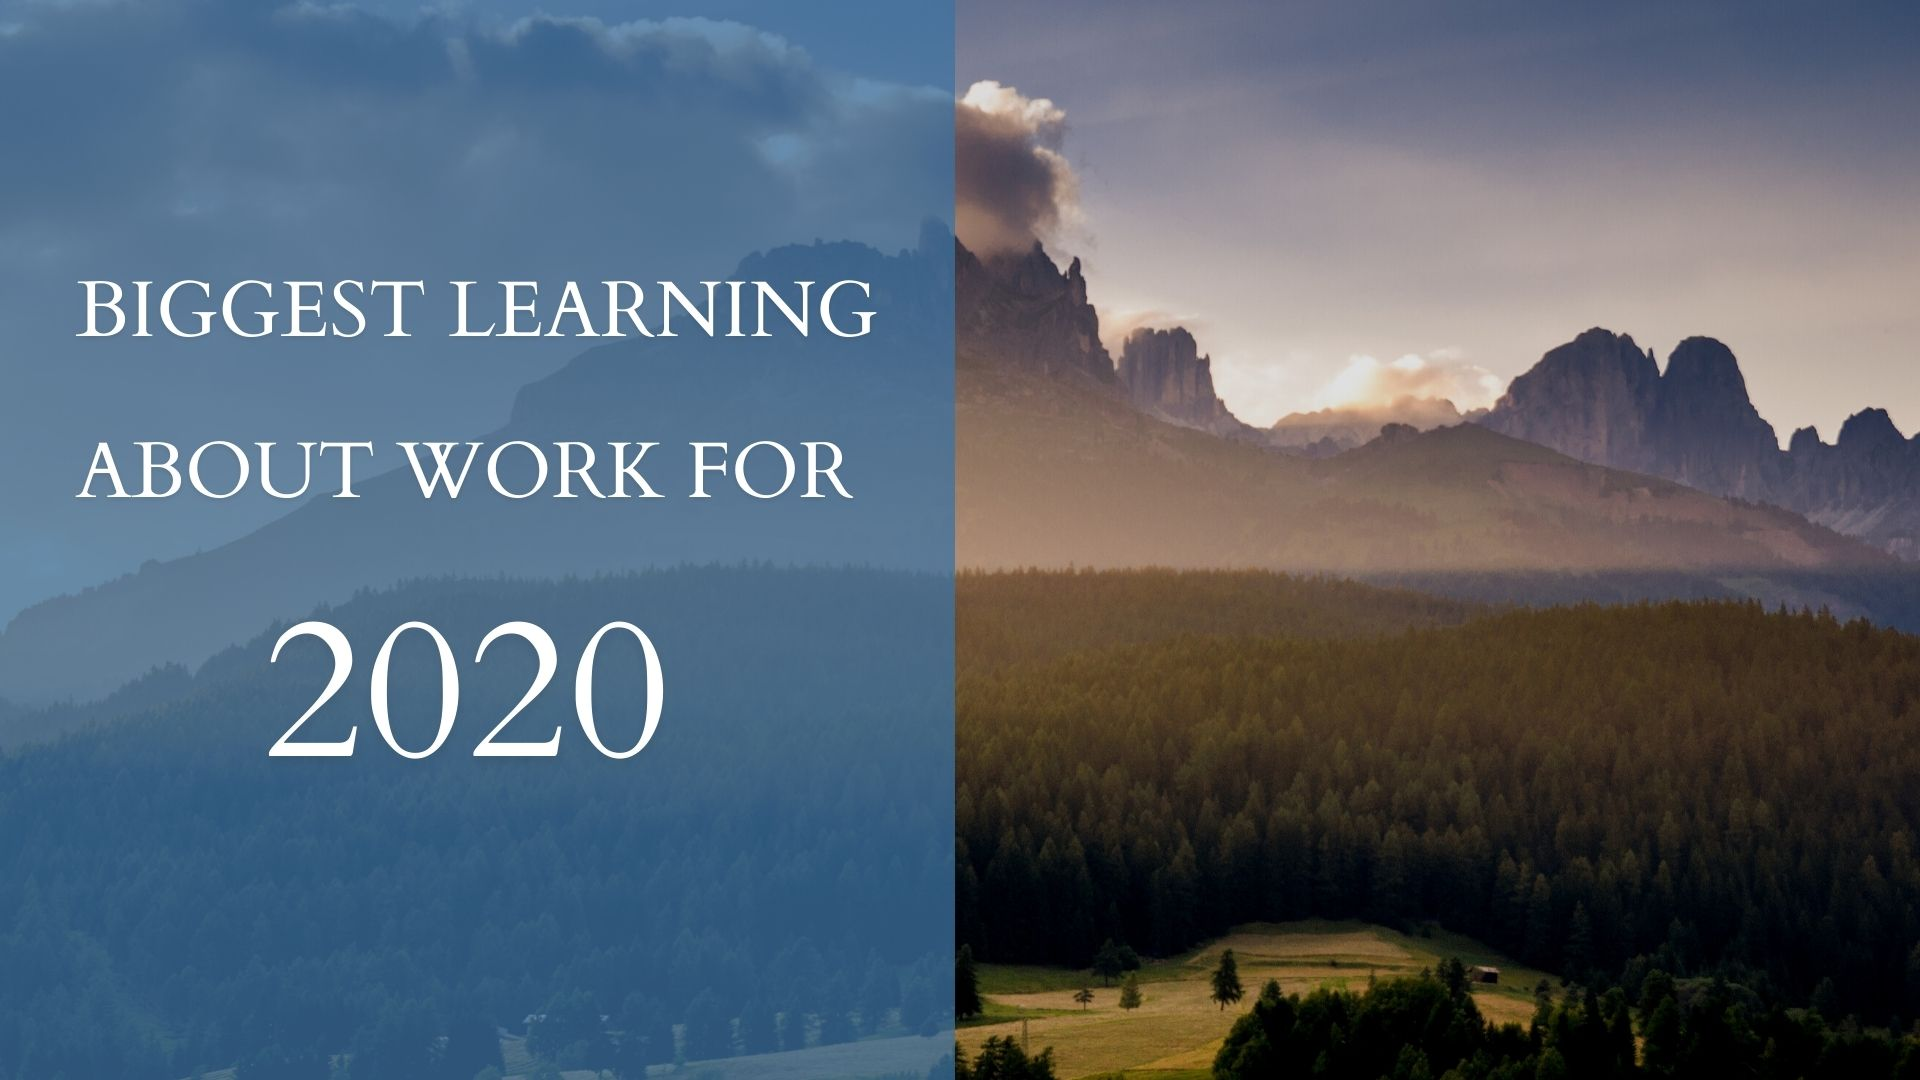 BIGGEST LEARNING ABOUT WORK FOR 2020